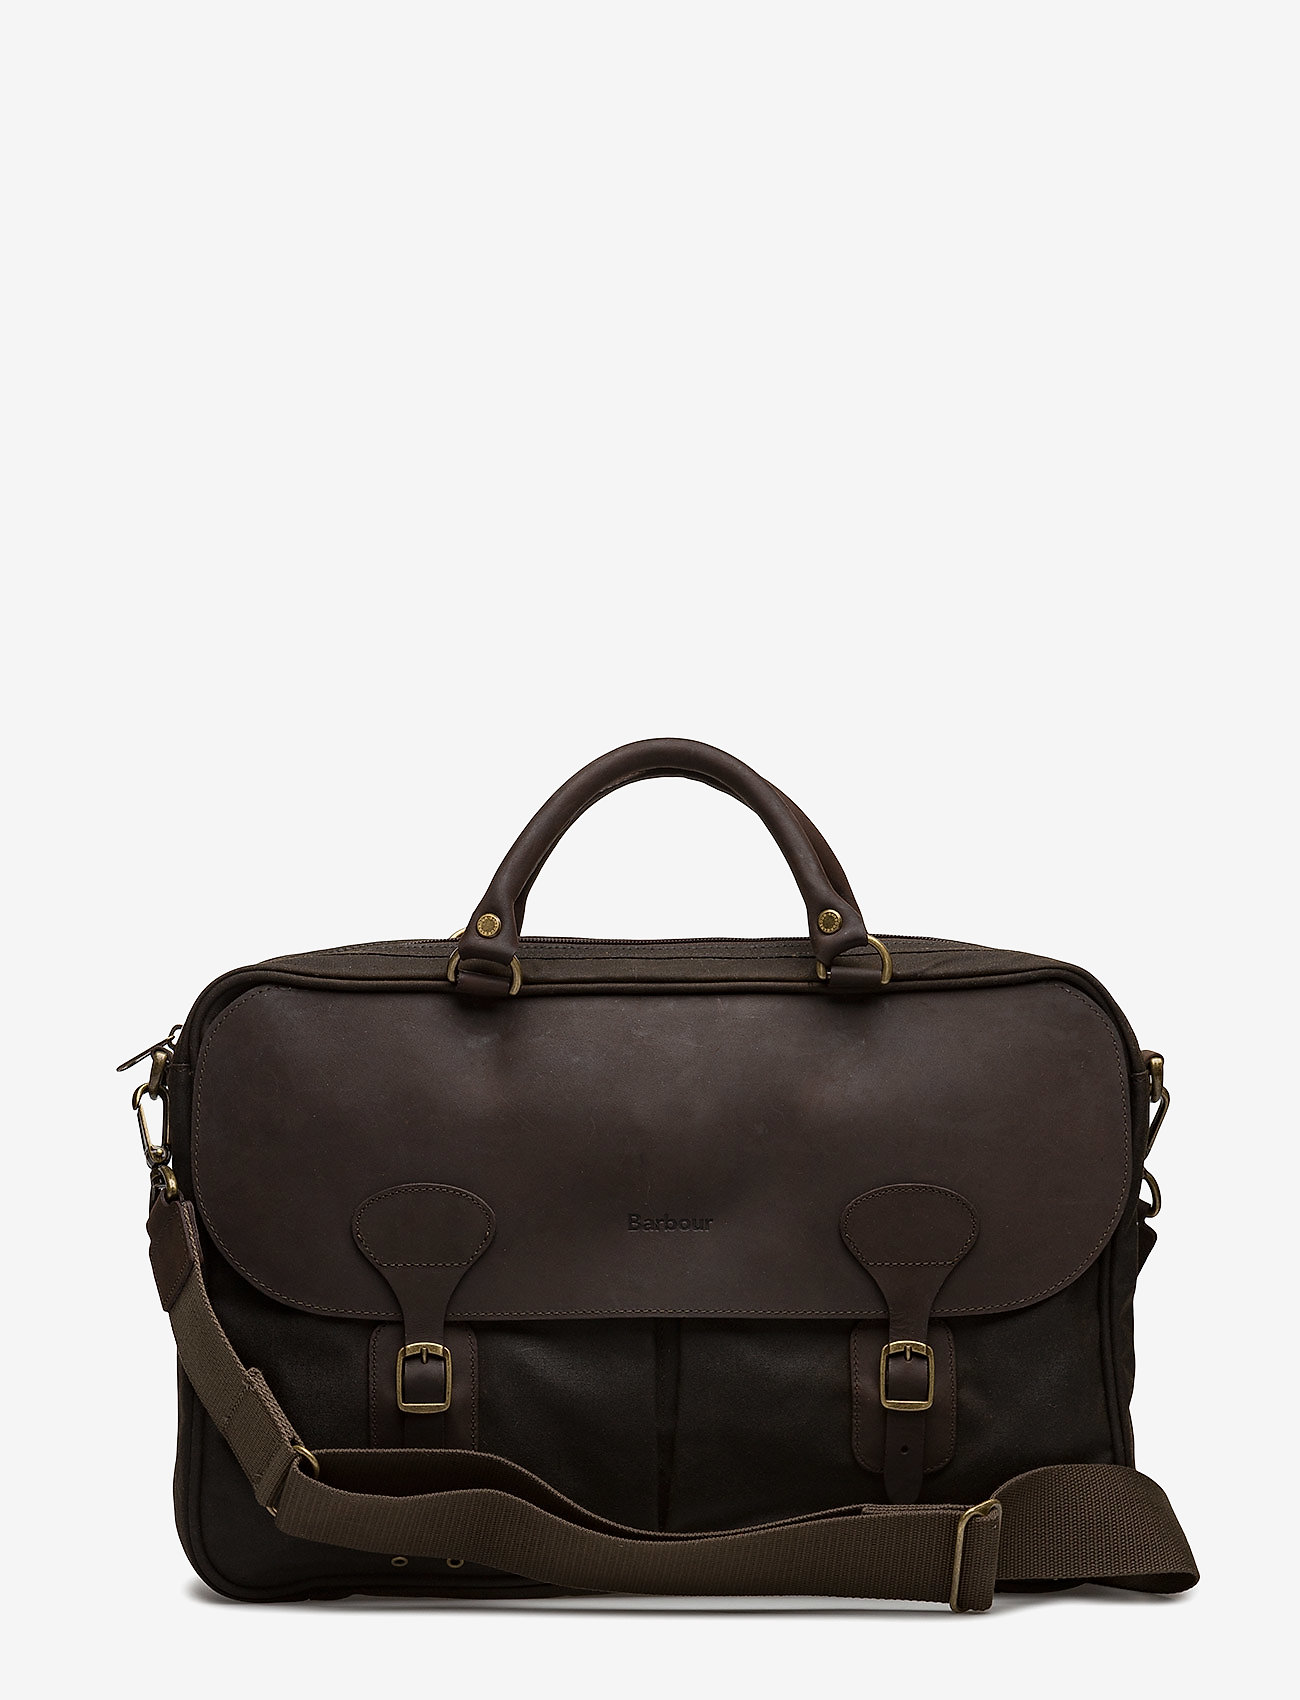 Barbour - Barbour Wax Lth Briefcase - olive